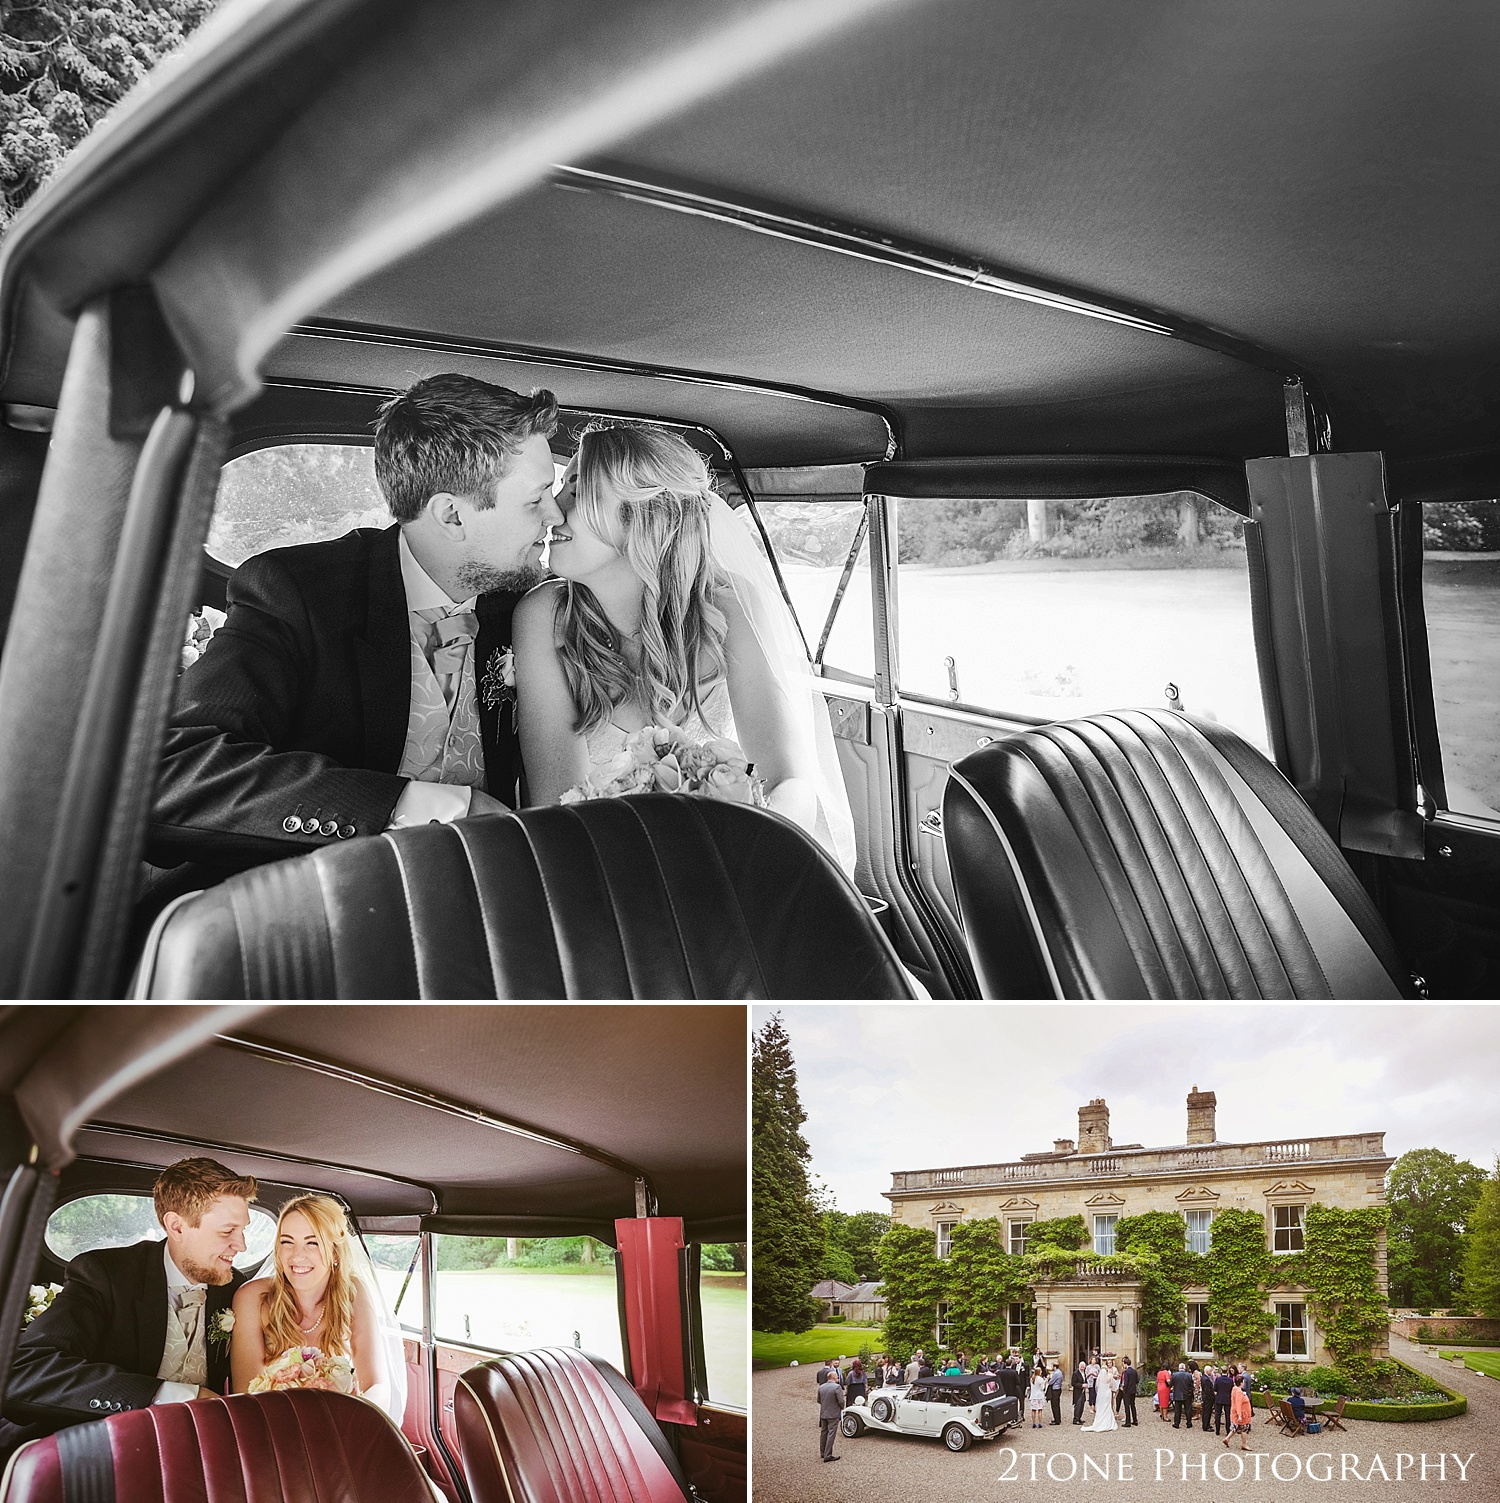 The bride and groom in the wedding car by www.2tonephotograhy.co.uk